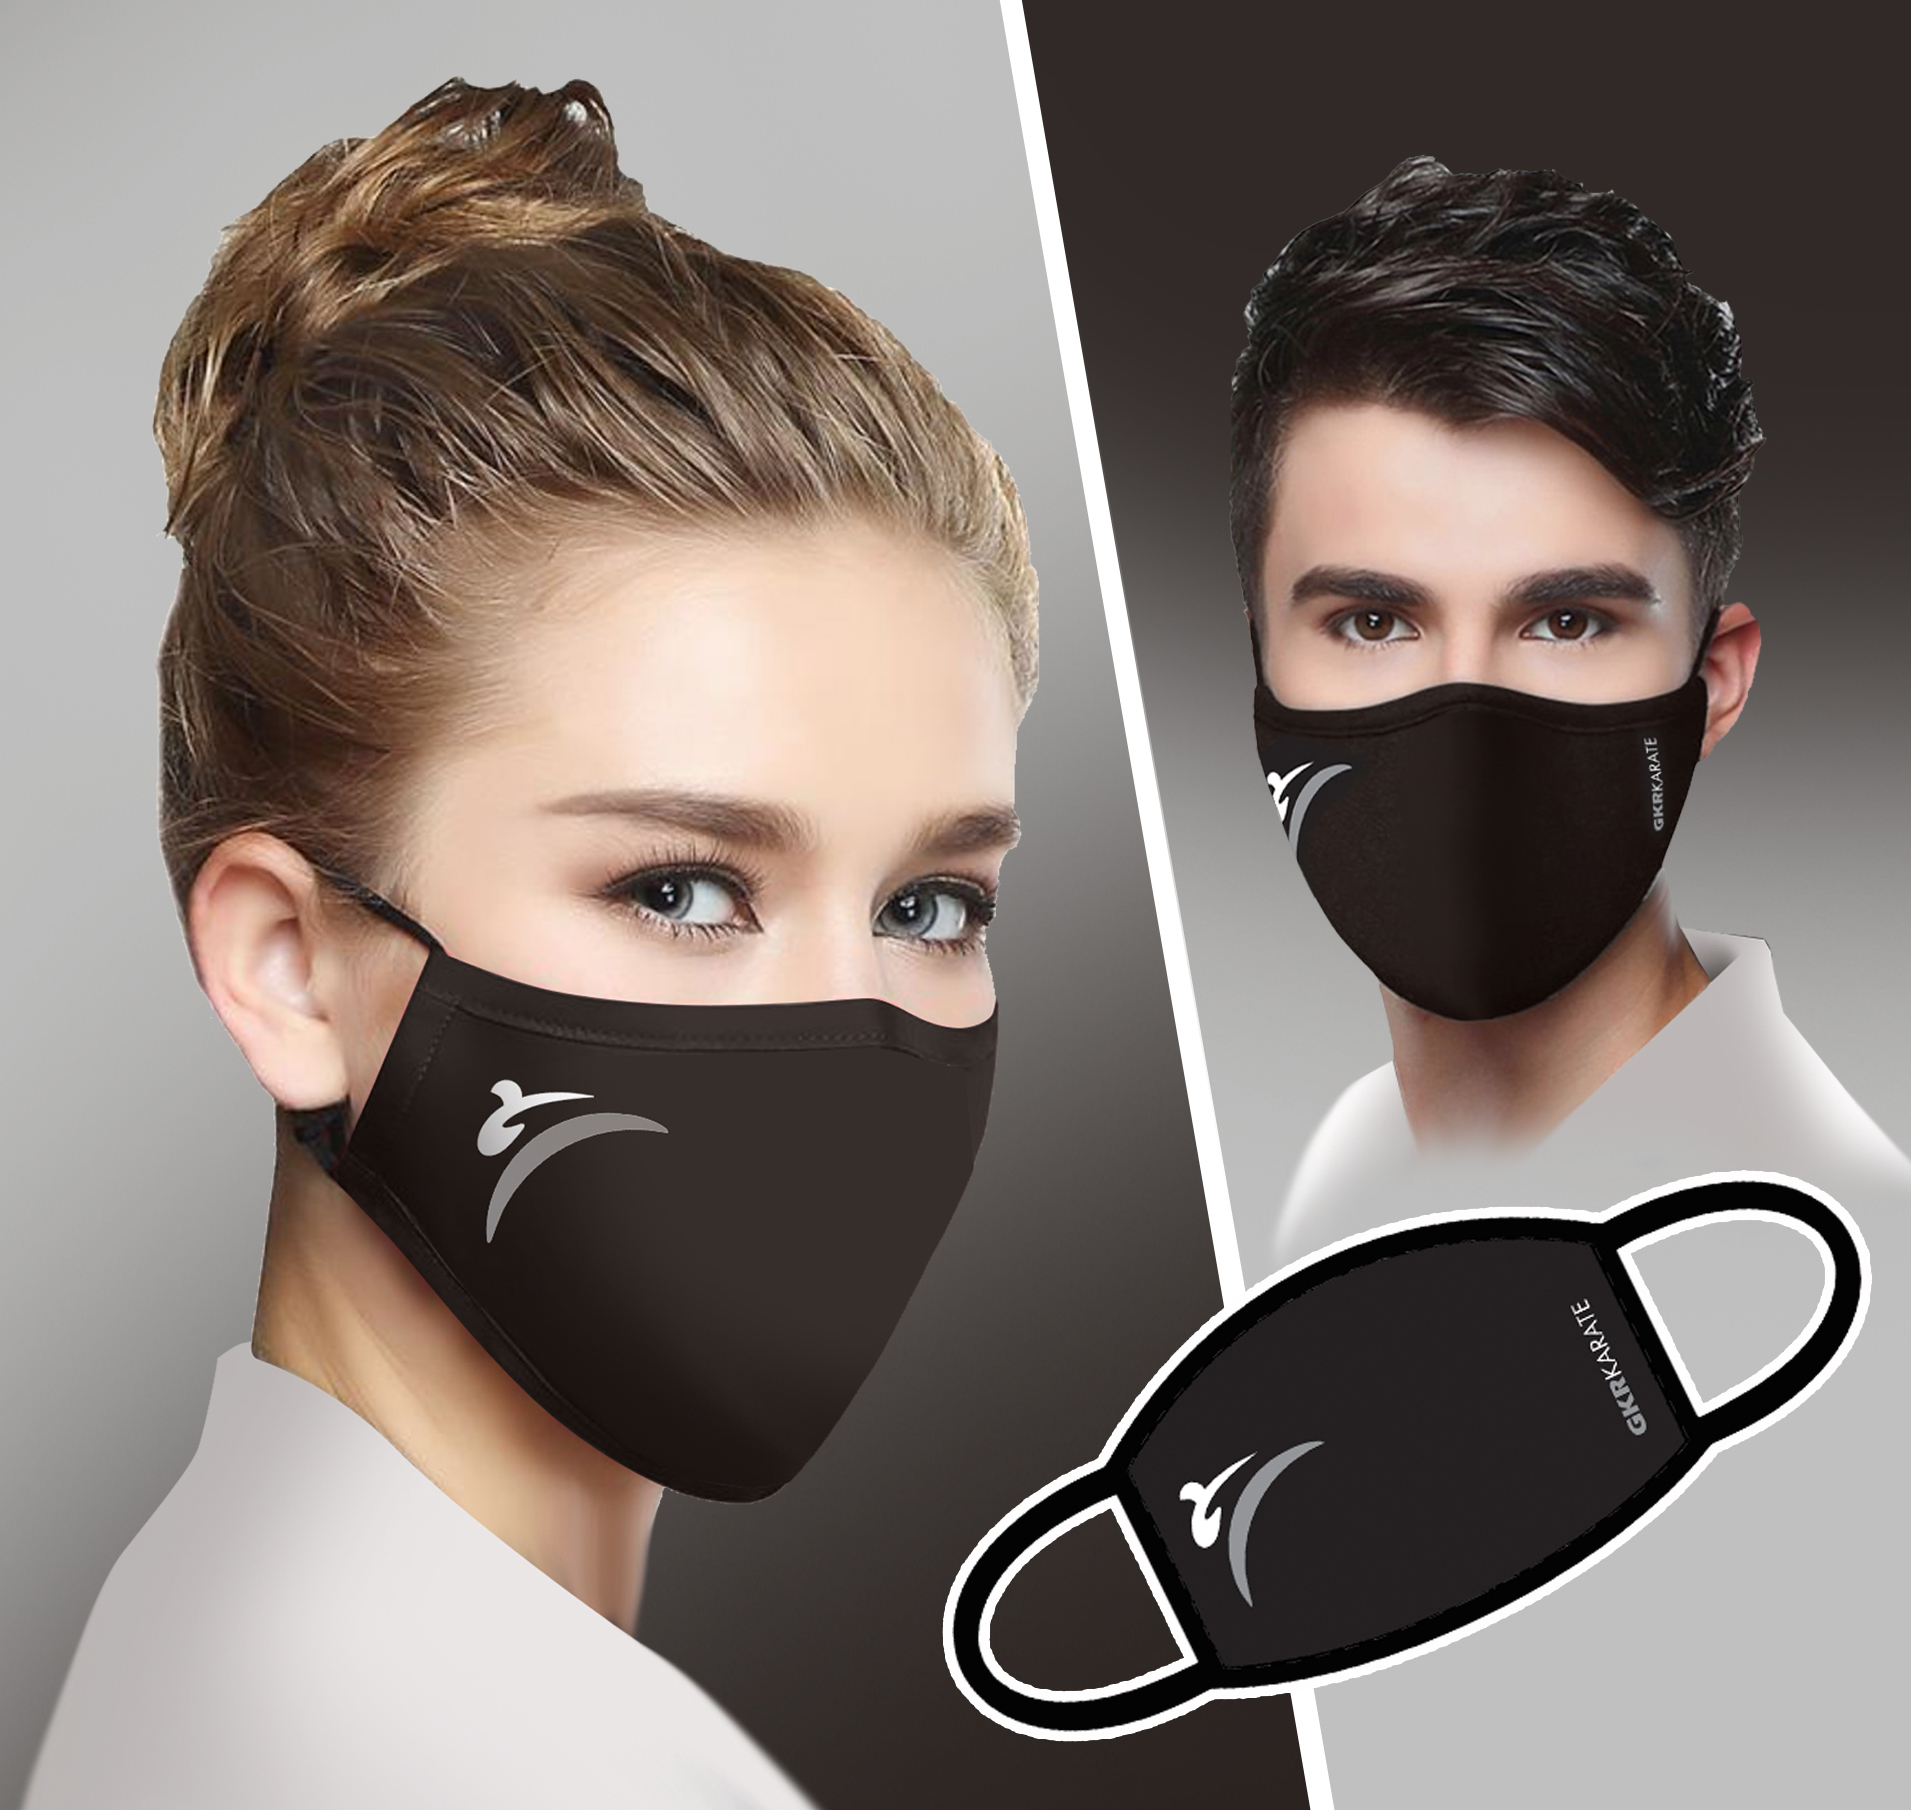 Limited Edition GKR Karate Face Mask